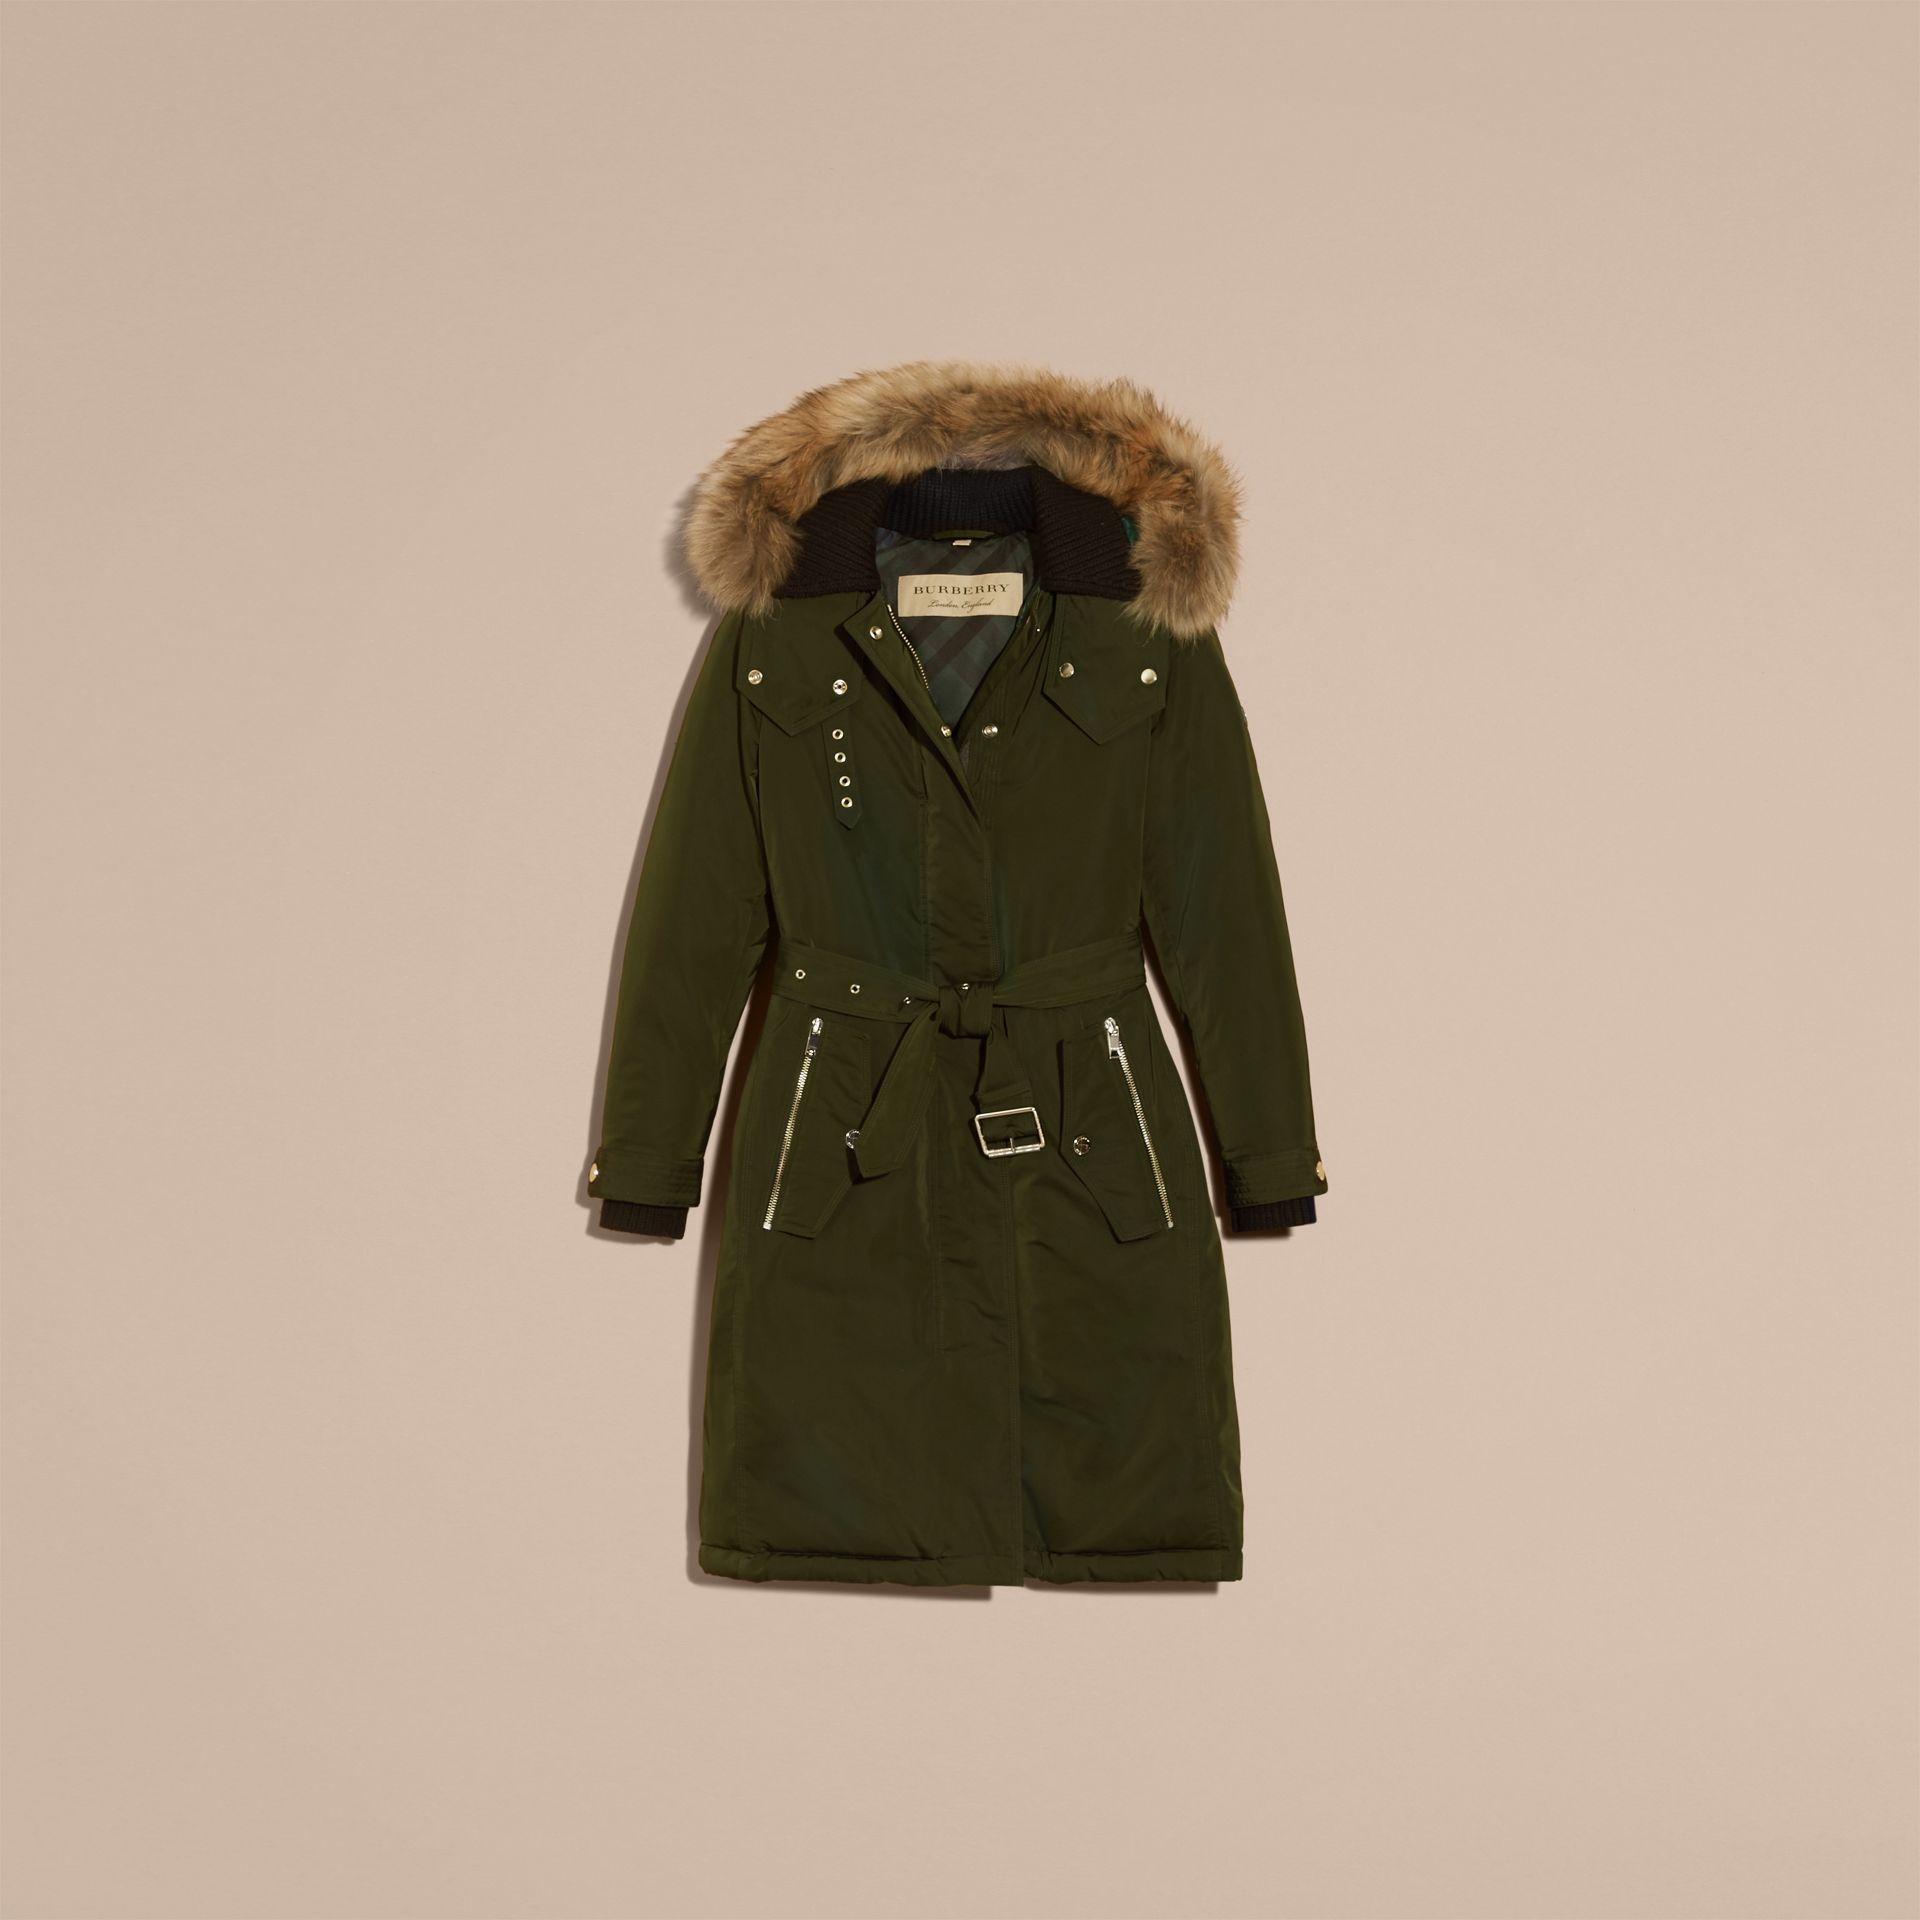 Dark cedar green Down-filled Parka Coat with Detachable Fur Trim Dark Cedar Green - gallery image 4